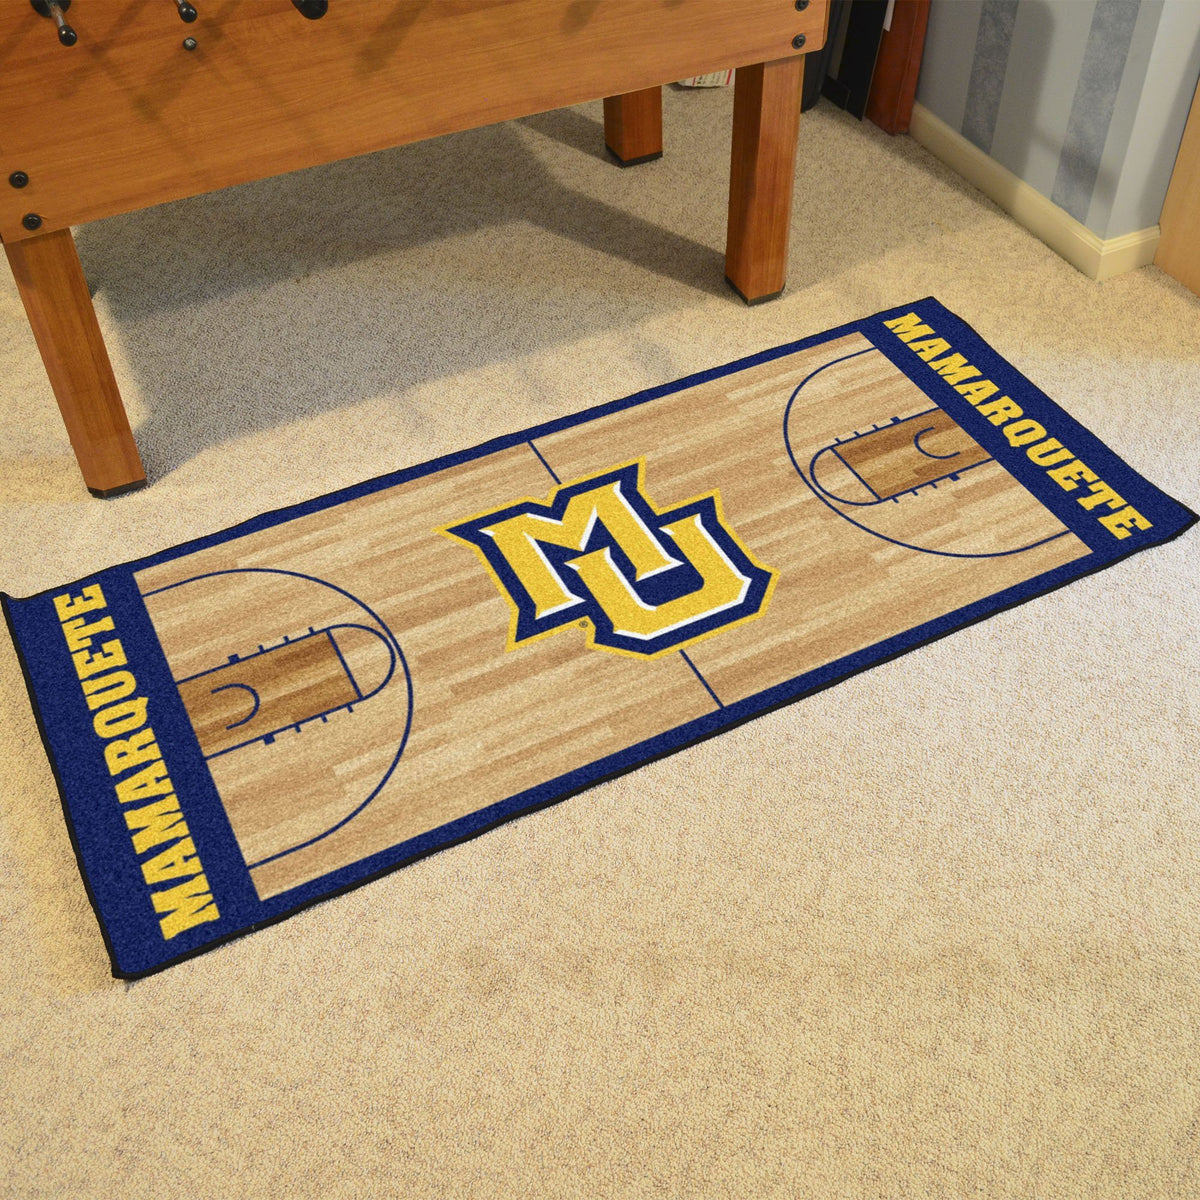 Collegiate - NCAA Basketball Runner Collegiate Mats, Rectangular Mats, NCAA Basketball Runner, Collegiate, Home Fan Mats Marquette